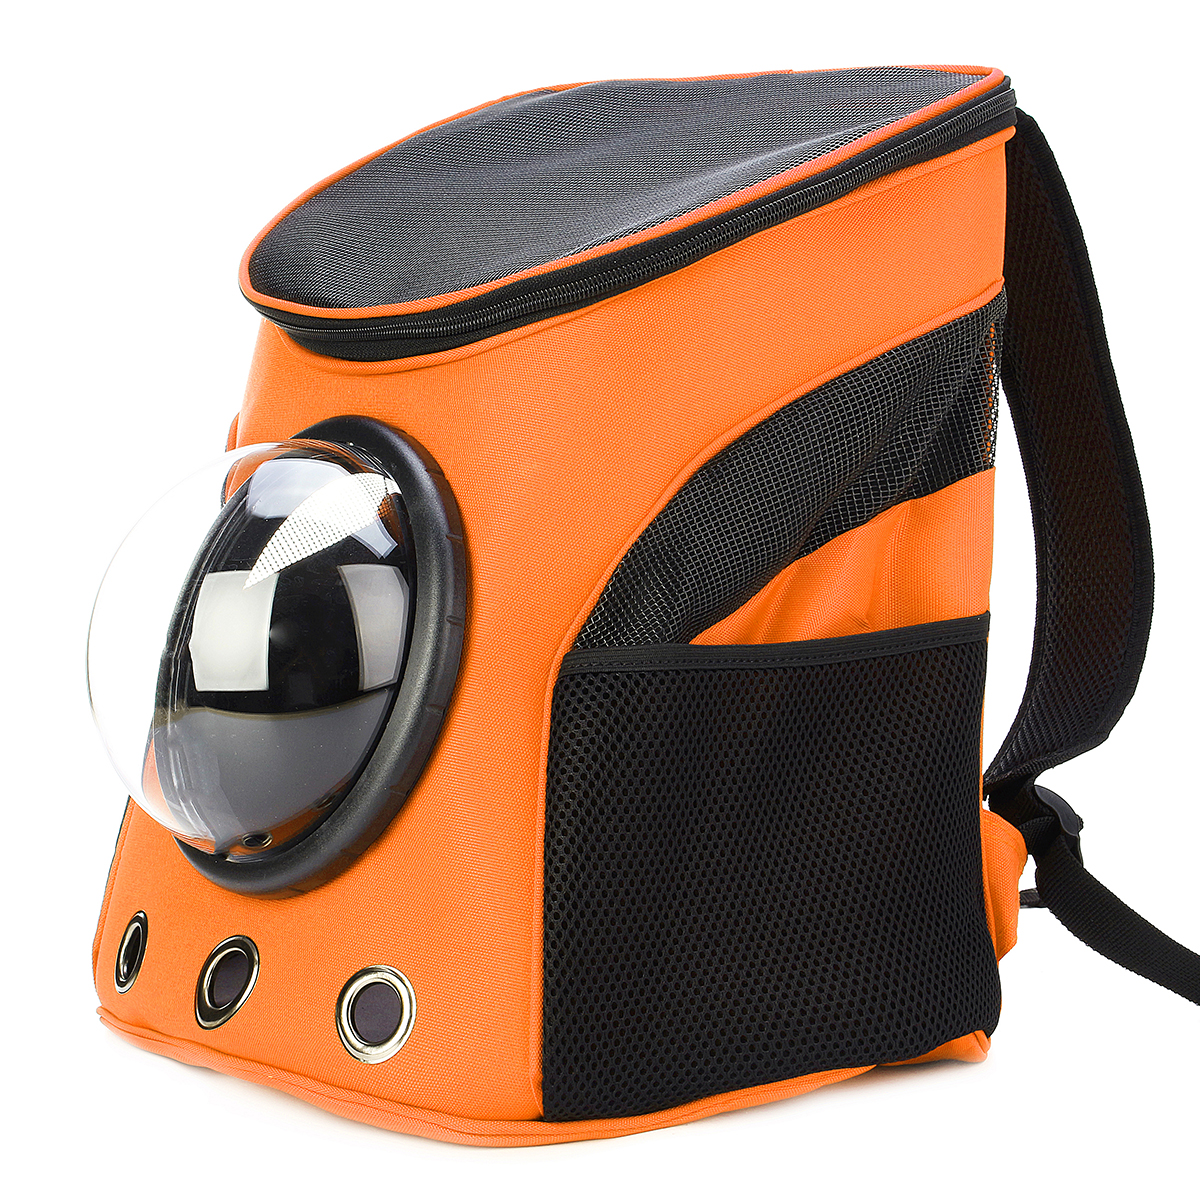 astronaut space capsule backpack - photo #9